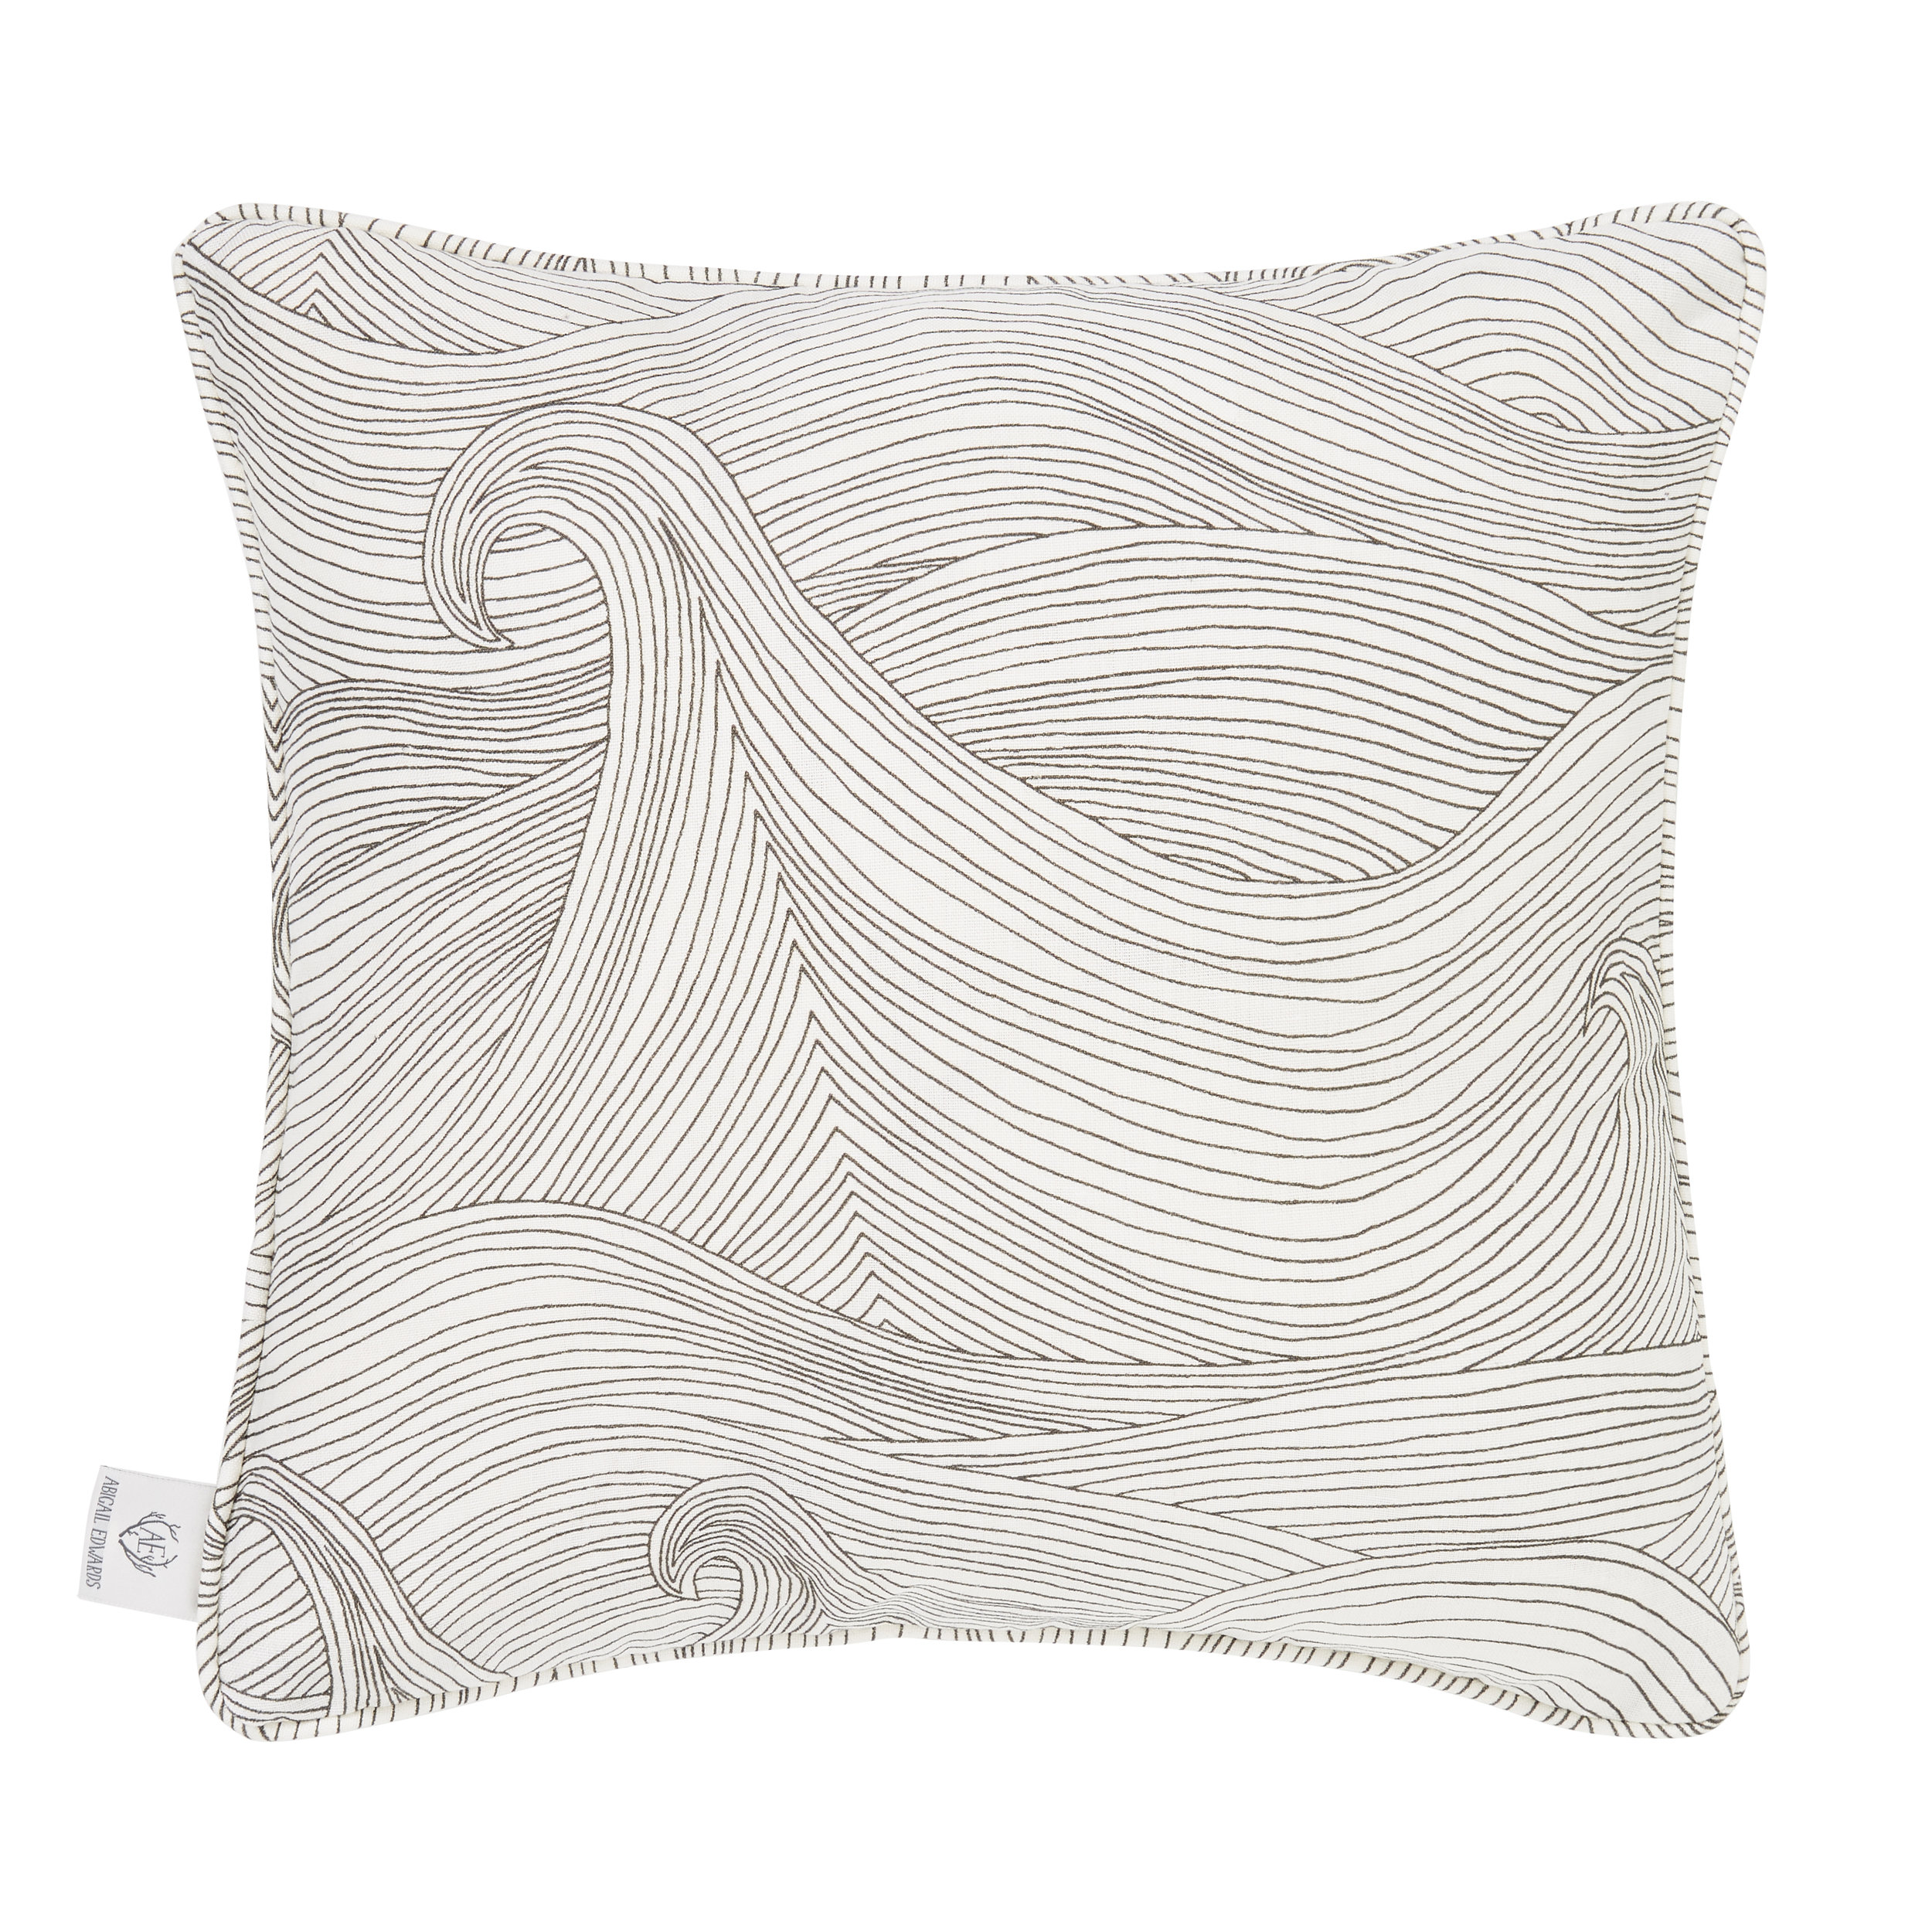 Seascape in Winter cushion cover